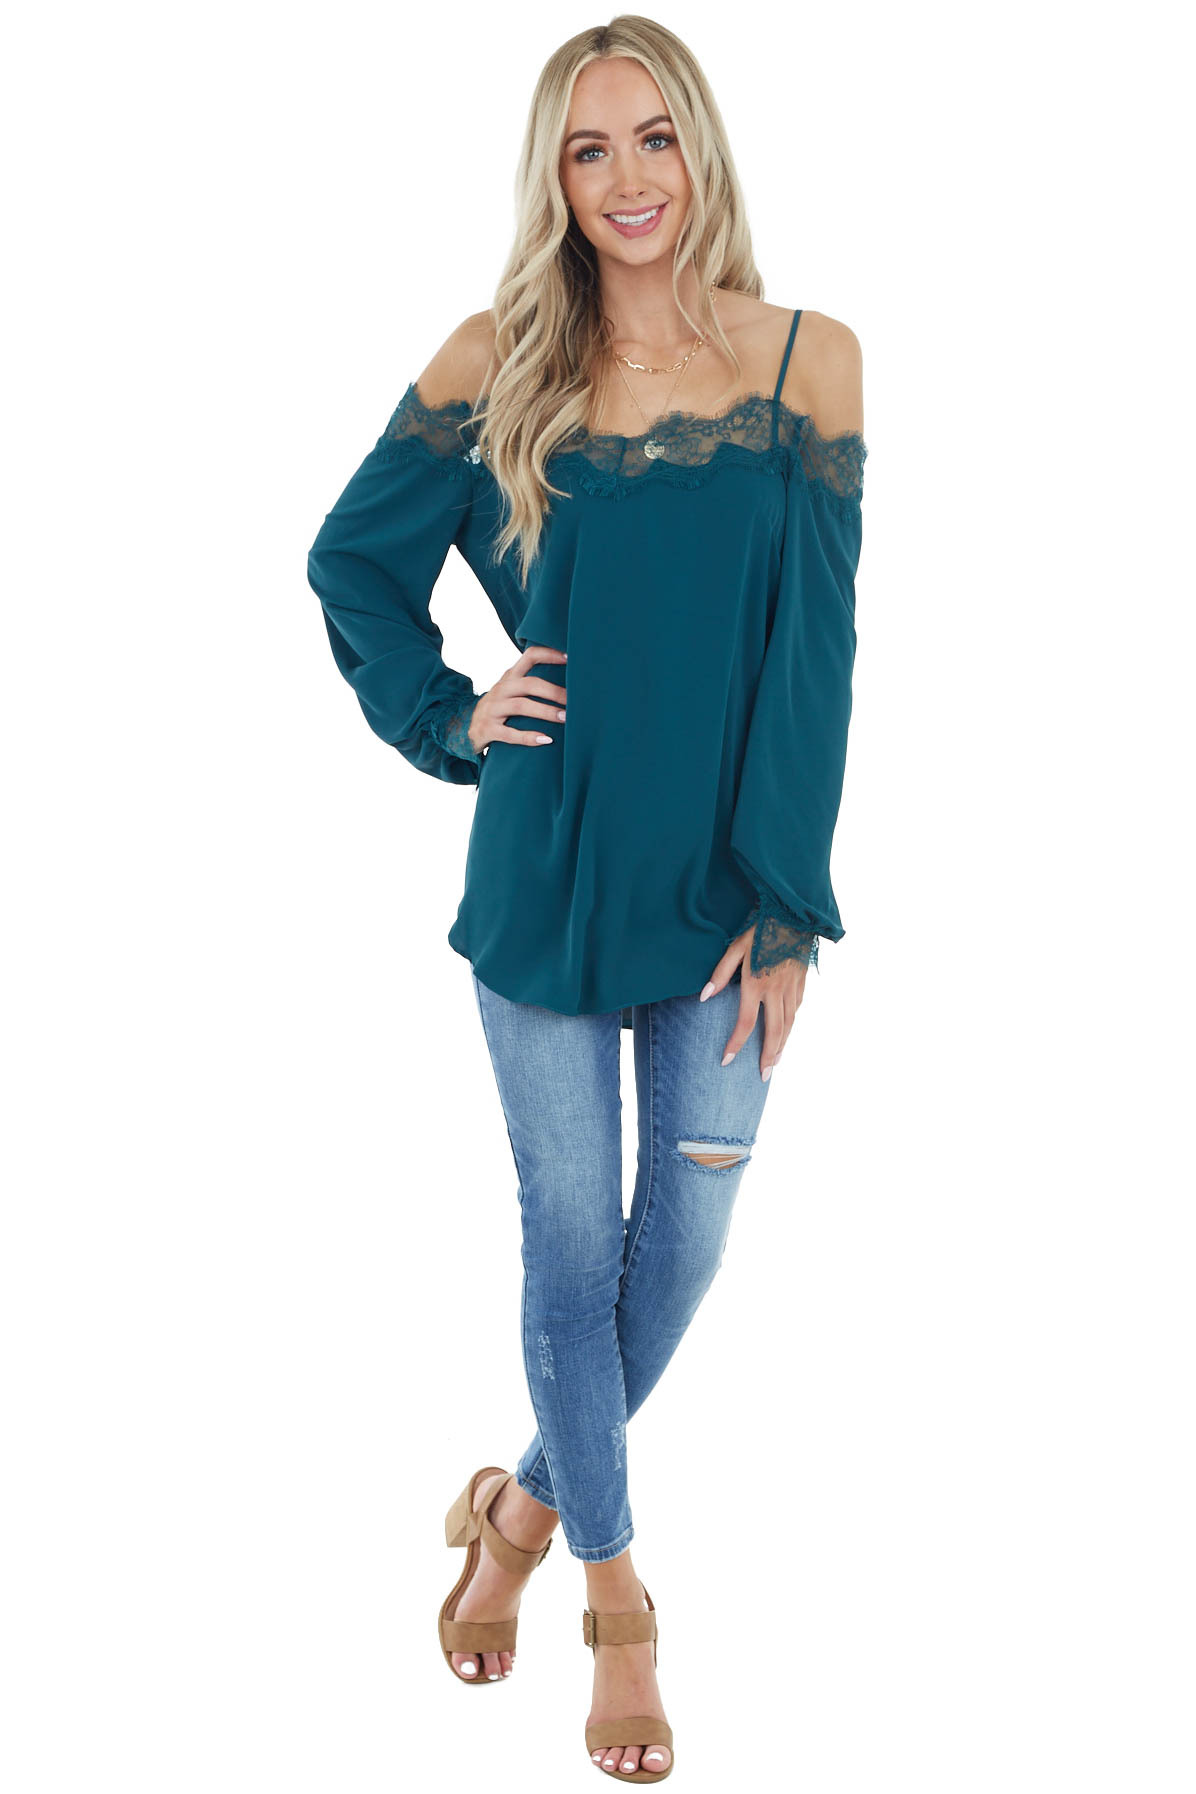 Pine Woven Cold Shoulder Top with Eyelash Lace Details